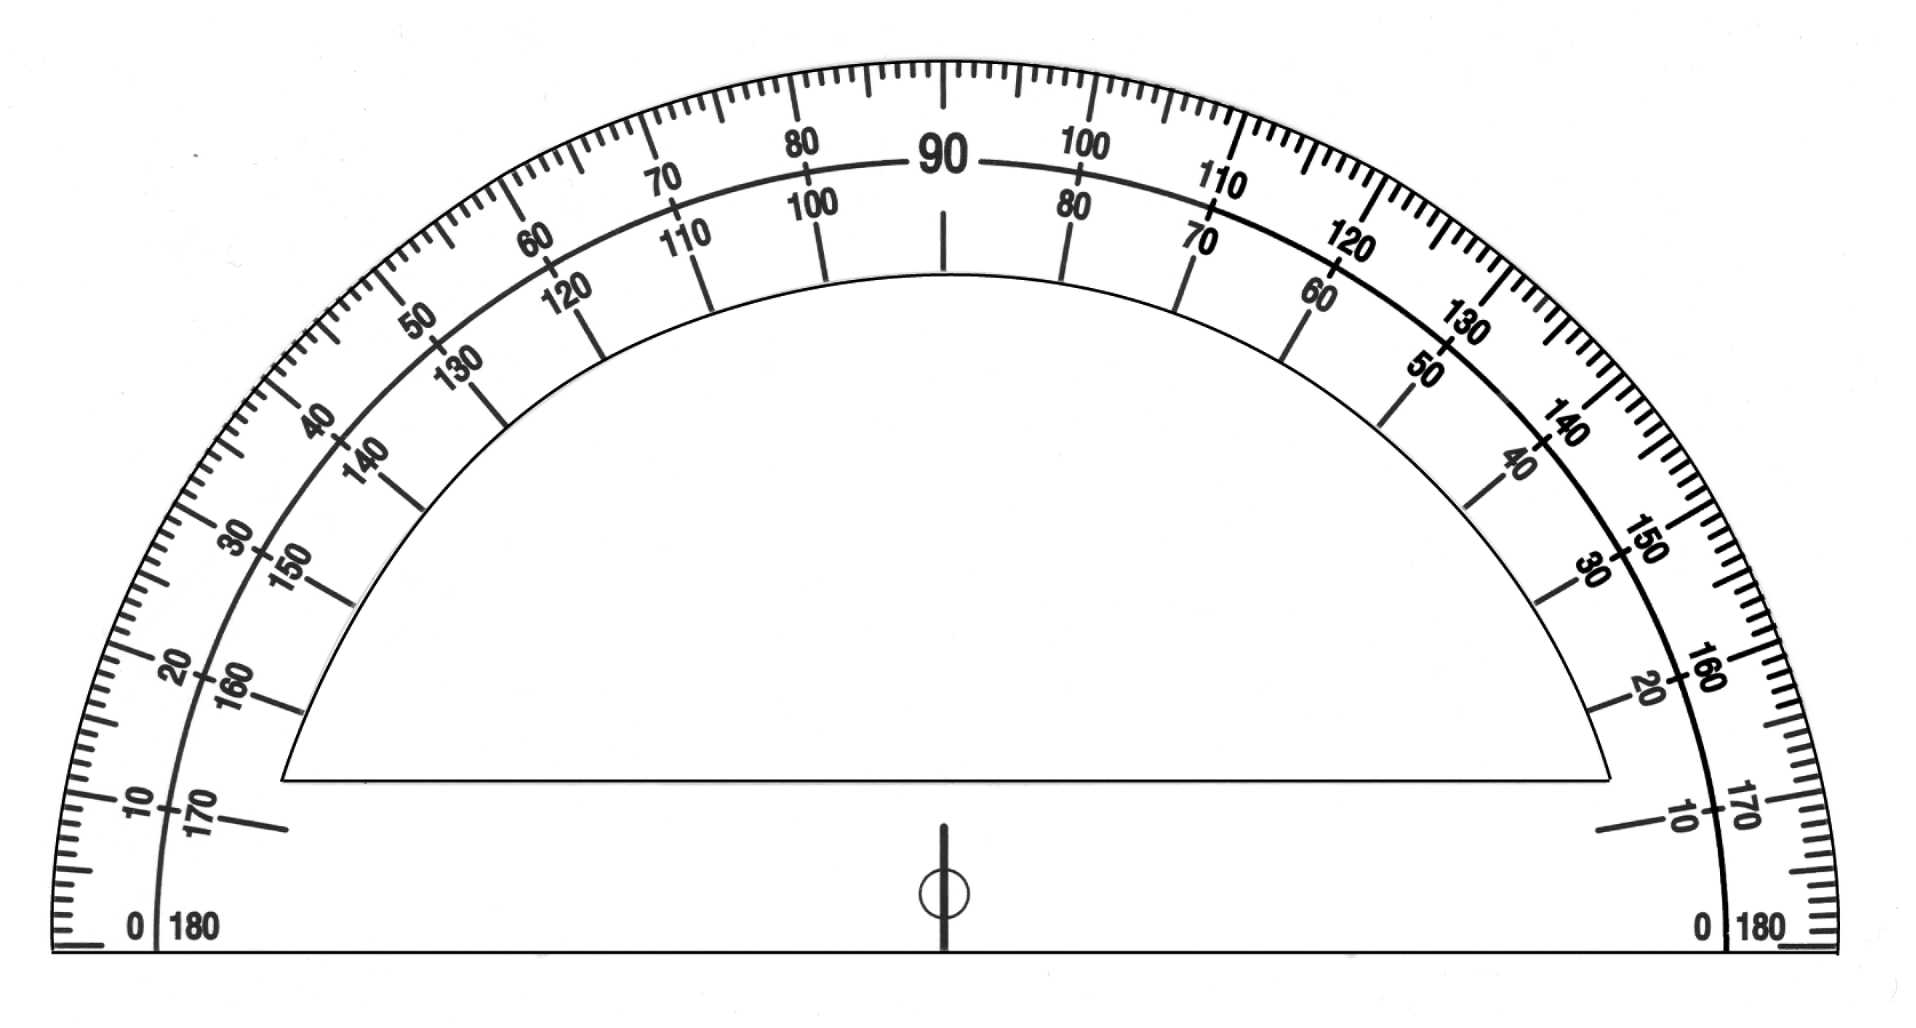 This Protractor Shows A Full Rotation Of 360 Degrees